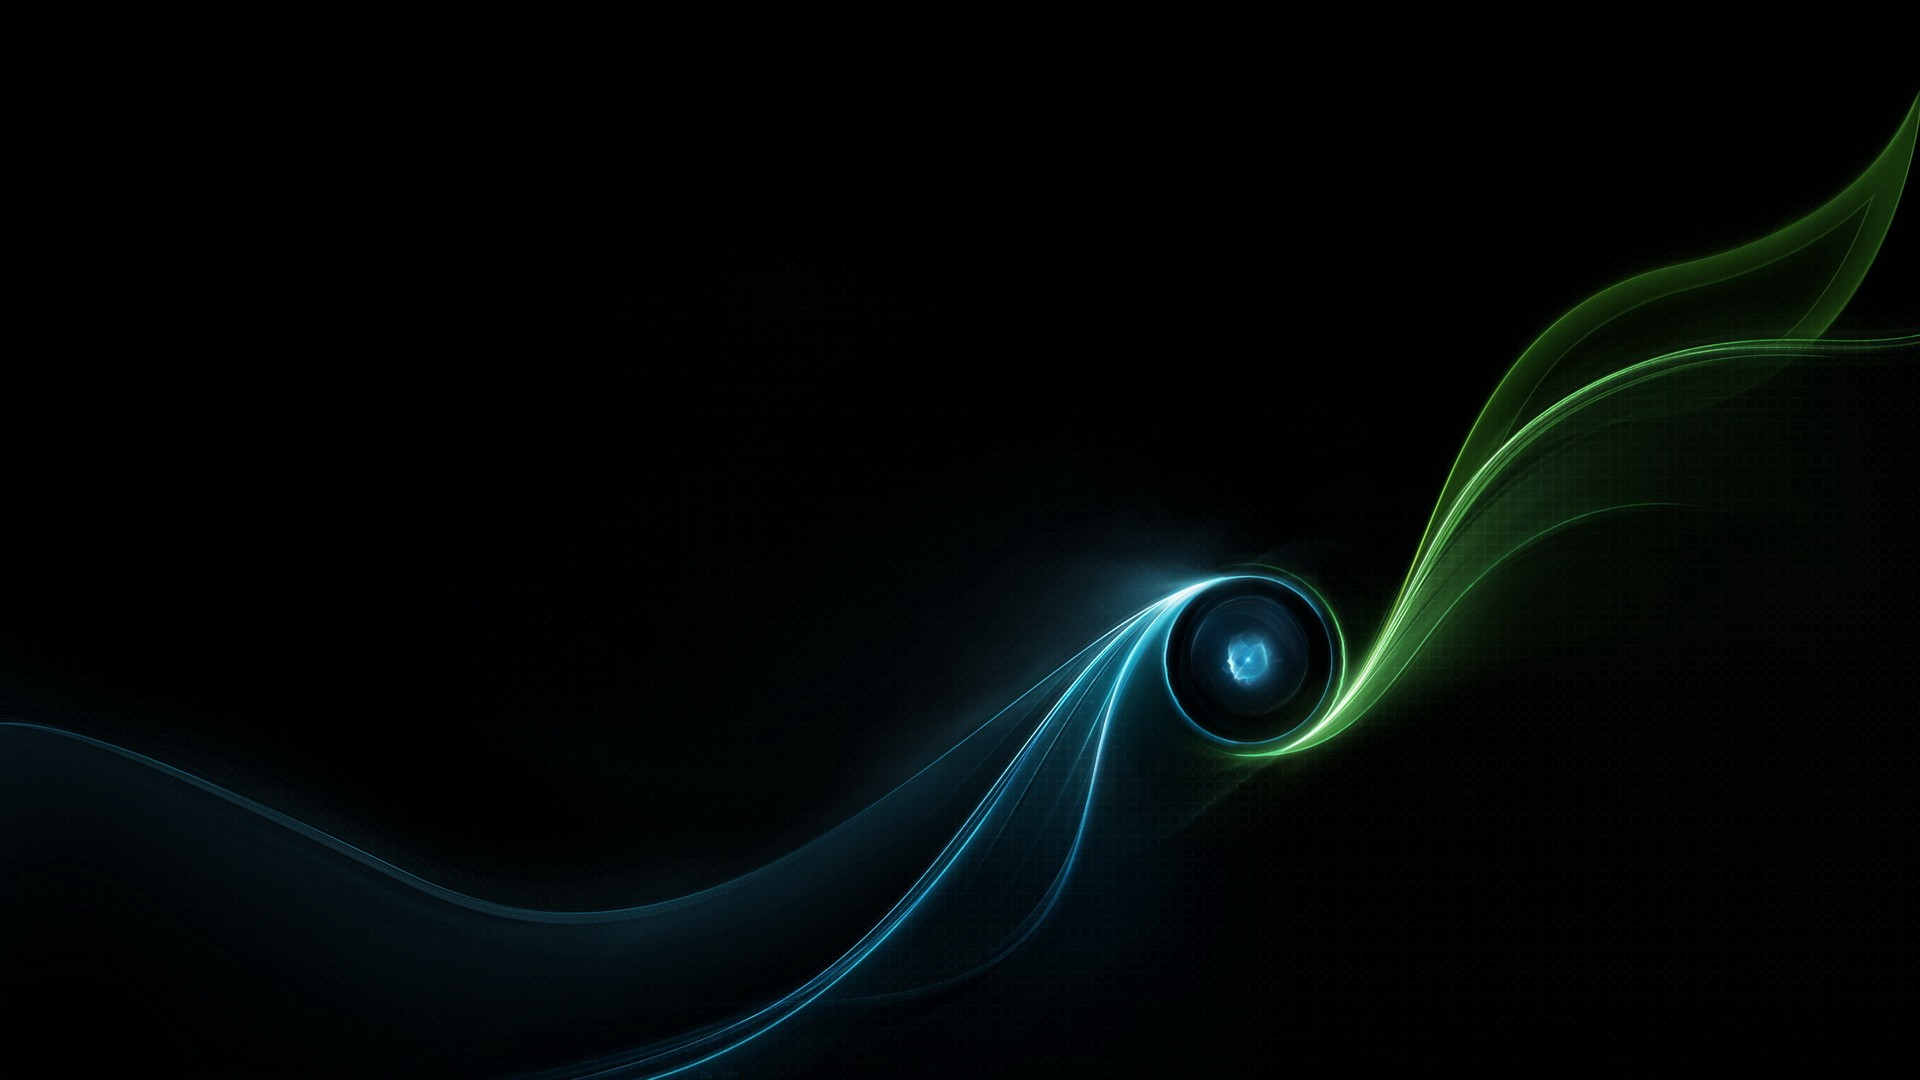 Abstract Black wallpaper   1251140 1920x1080